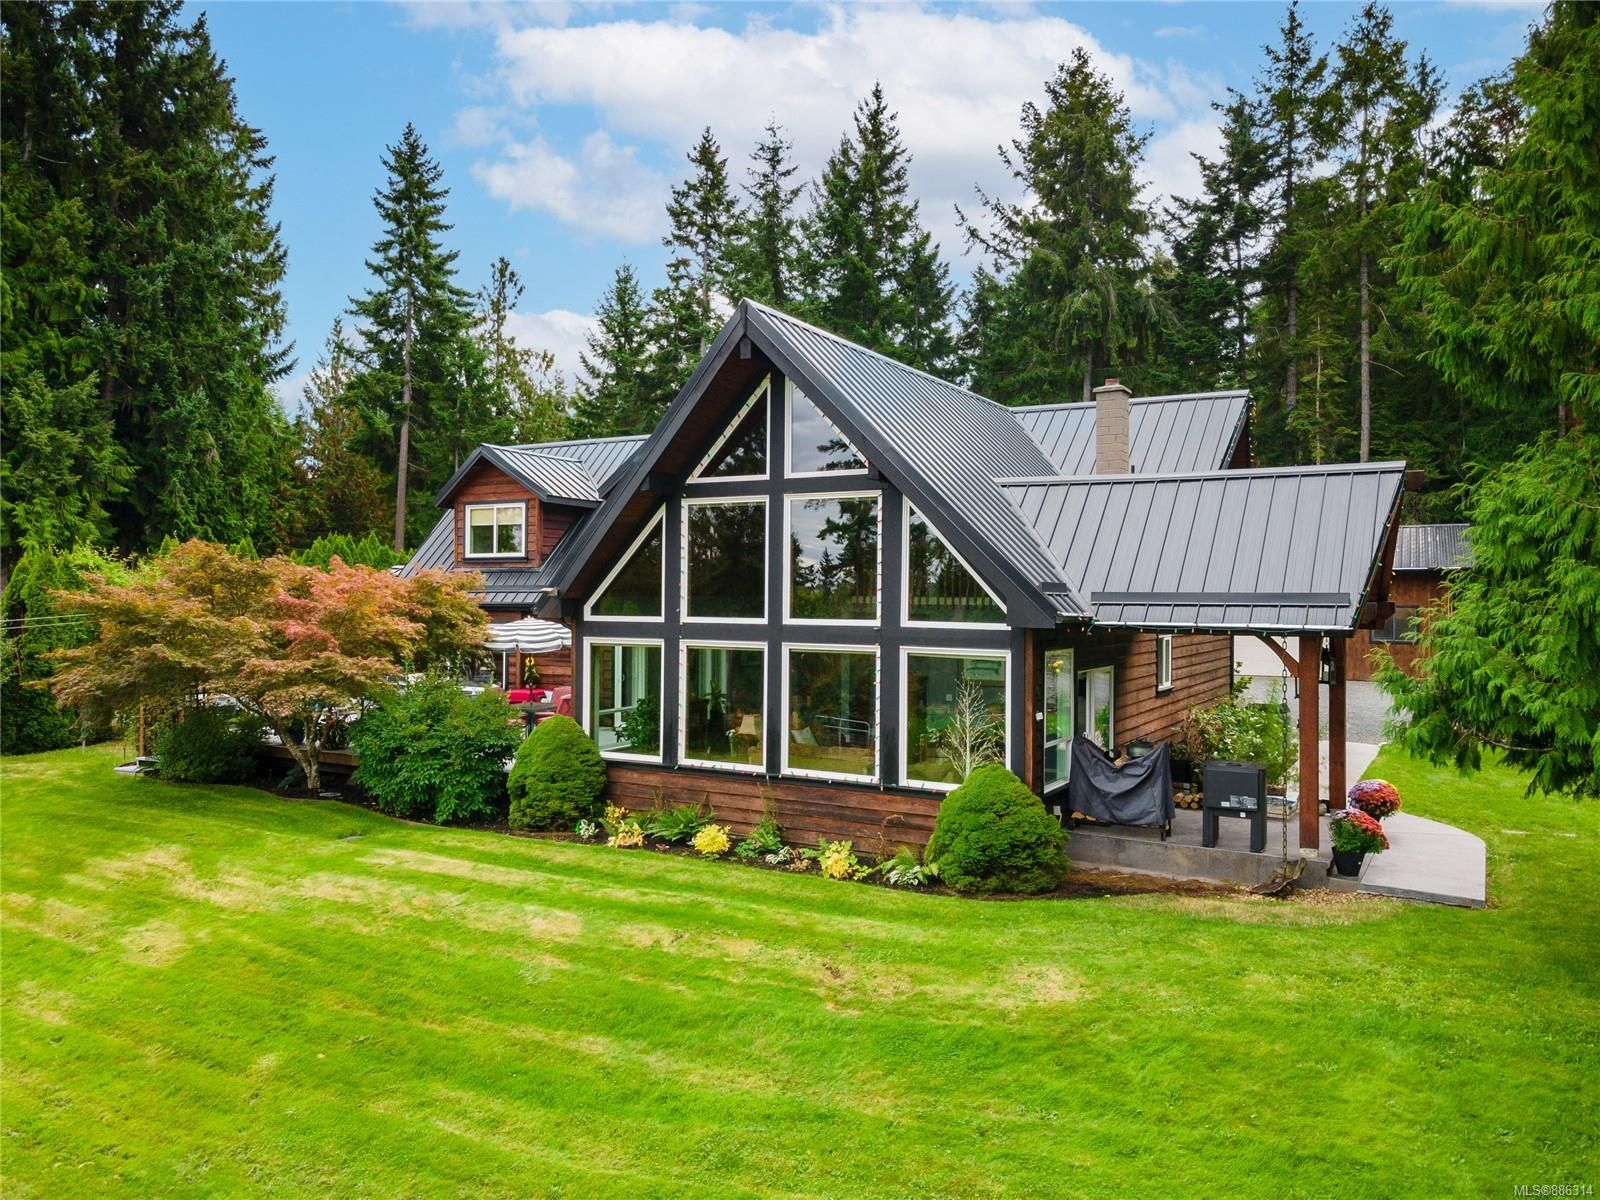 Main Photo: 521 Fourneau Way in : PQ Parksville House for sale (Parksville/Qualicum)  : MLS®# 886314